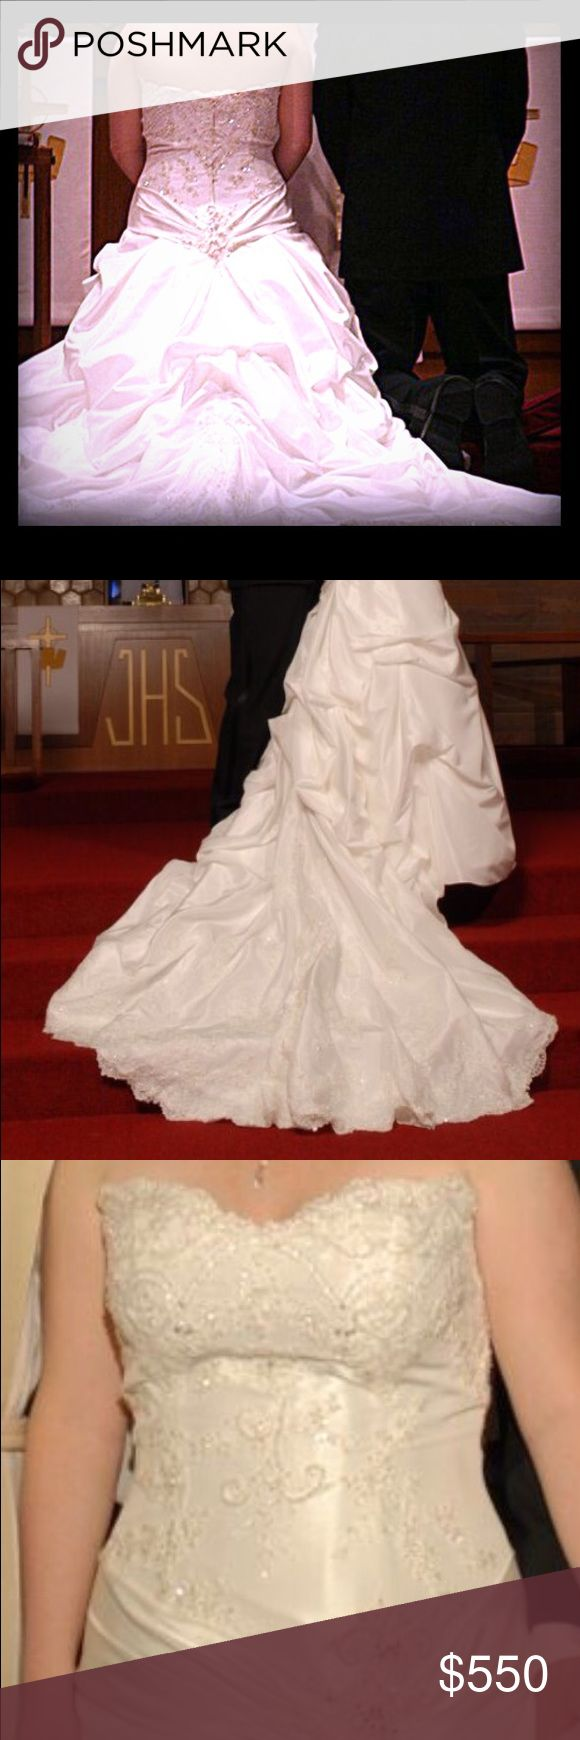 Casablanca Bridal Wedding Gown Size 12